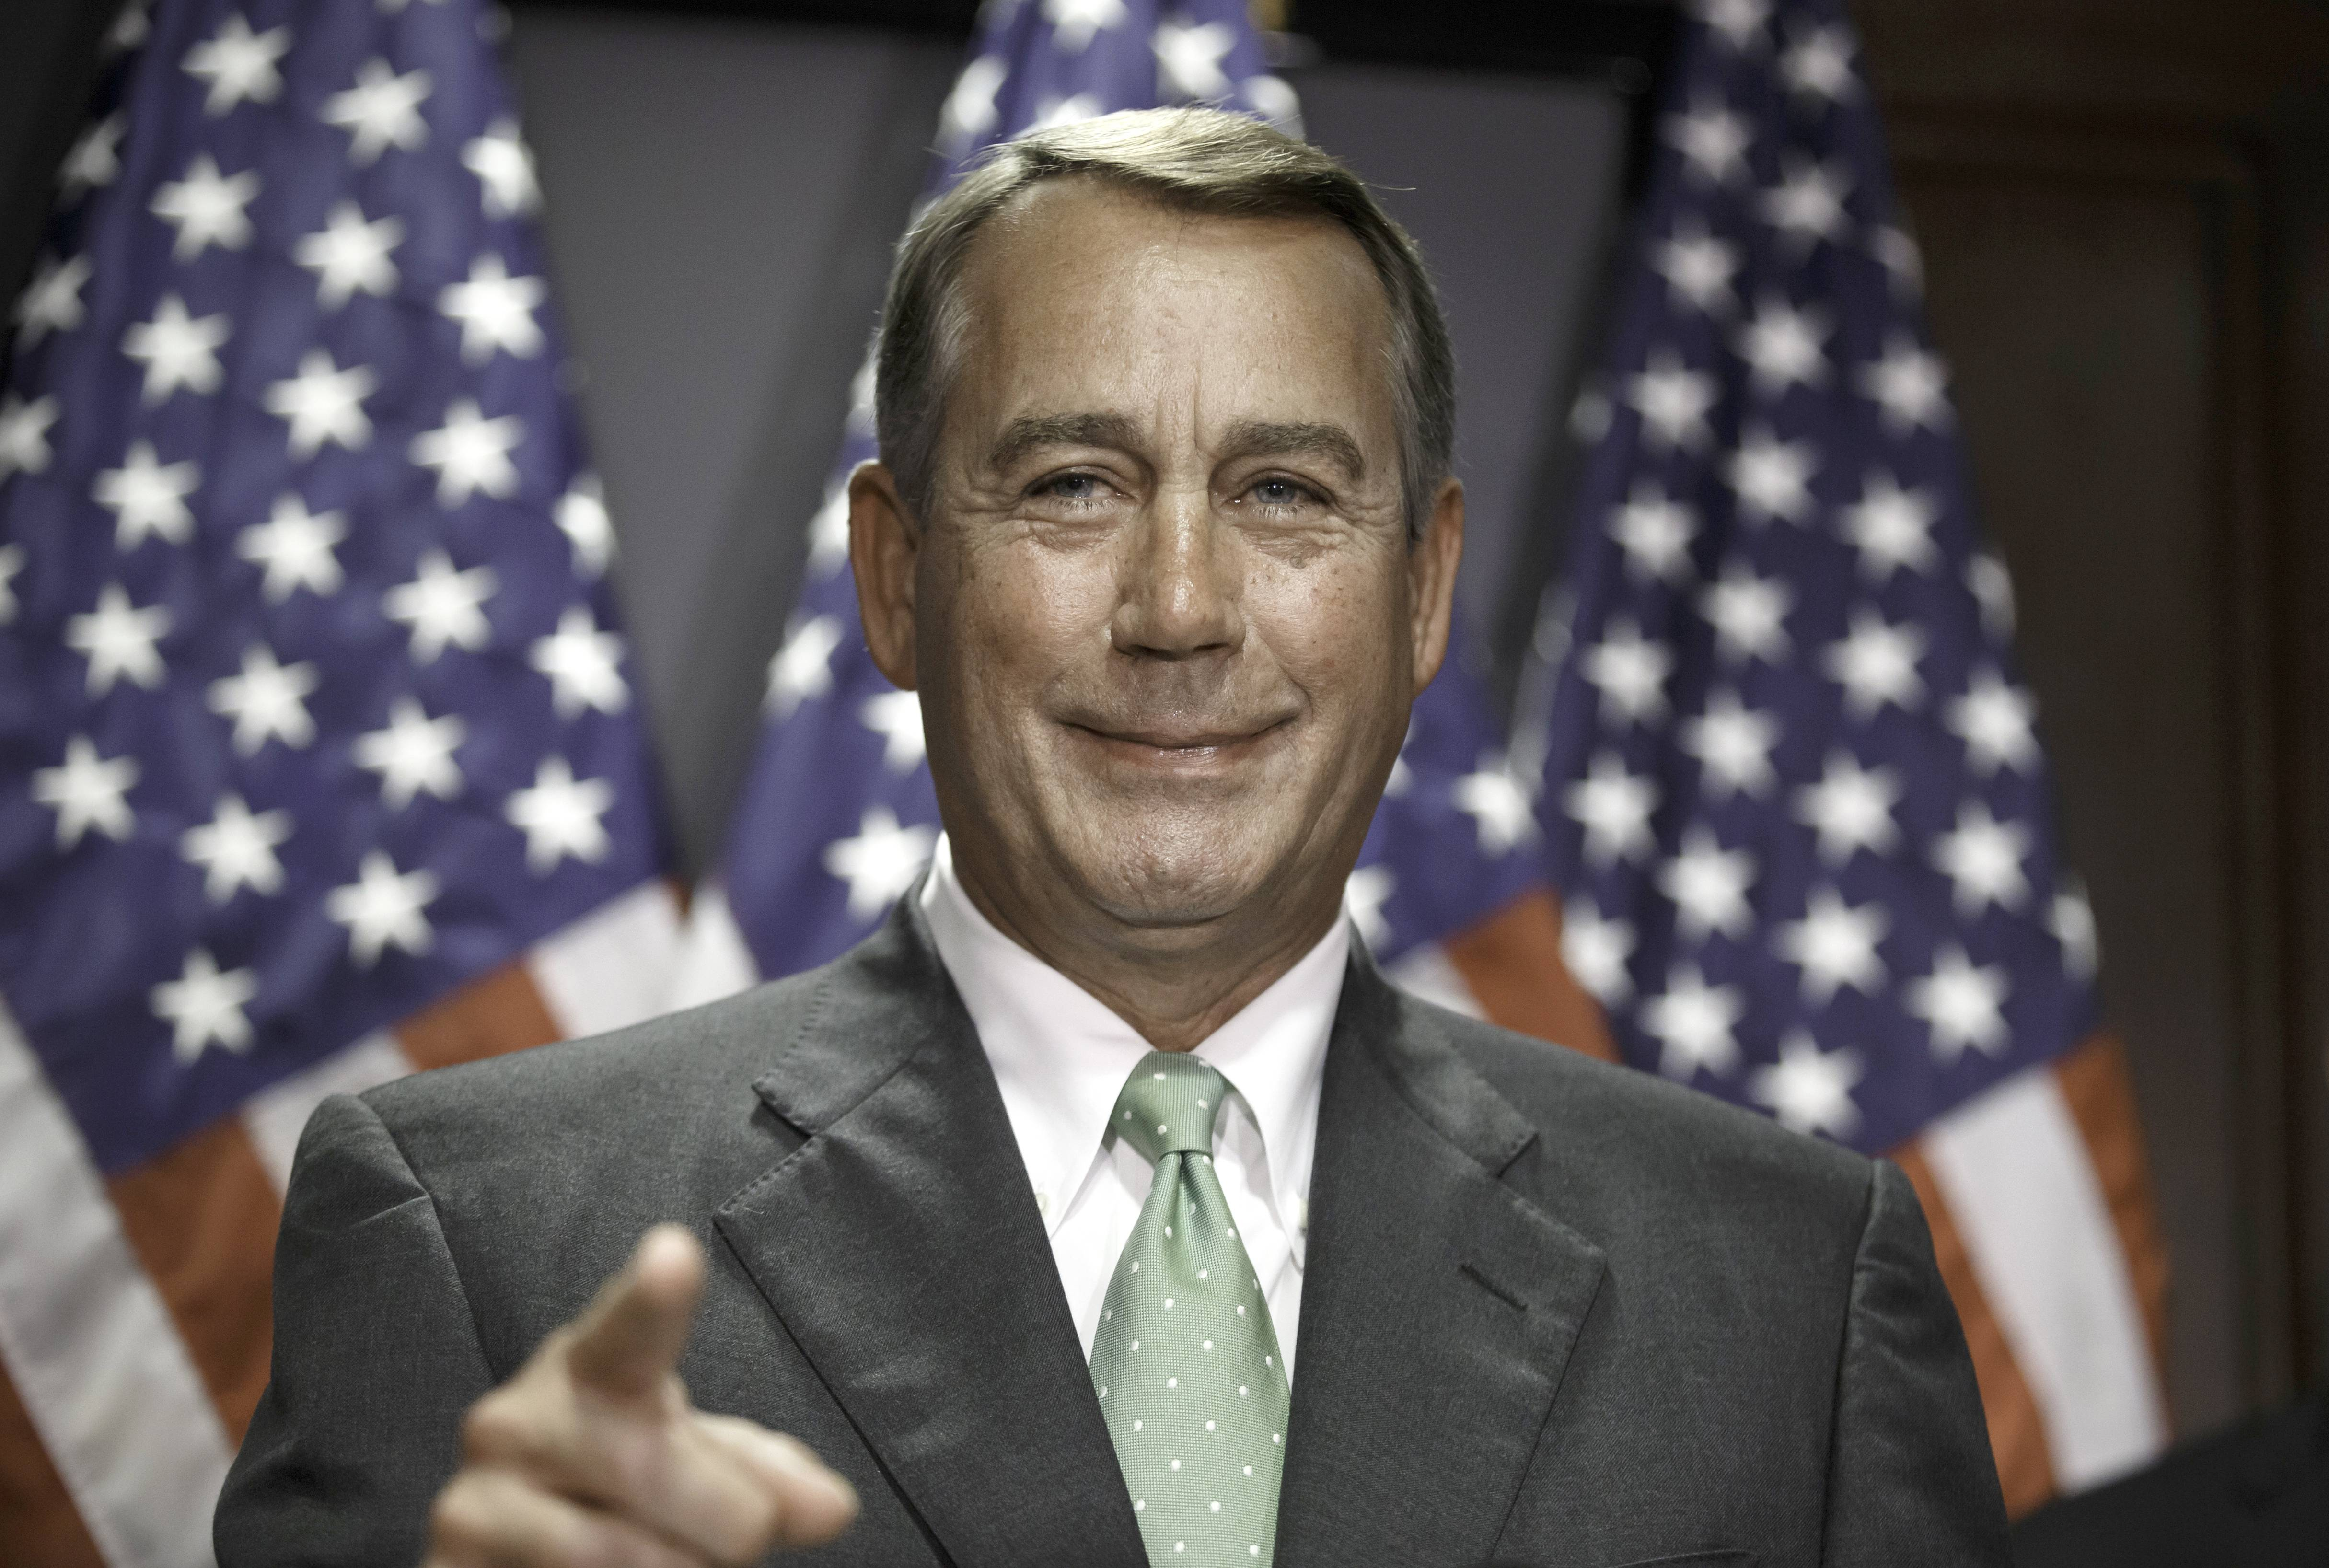 Speaker of the House John Boehner on Tuesday ushered through passage of a multibillion-dollar appropriation for federal highway and transit programs but ducked the issue of how to put them on a sound financial footing for the long term.